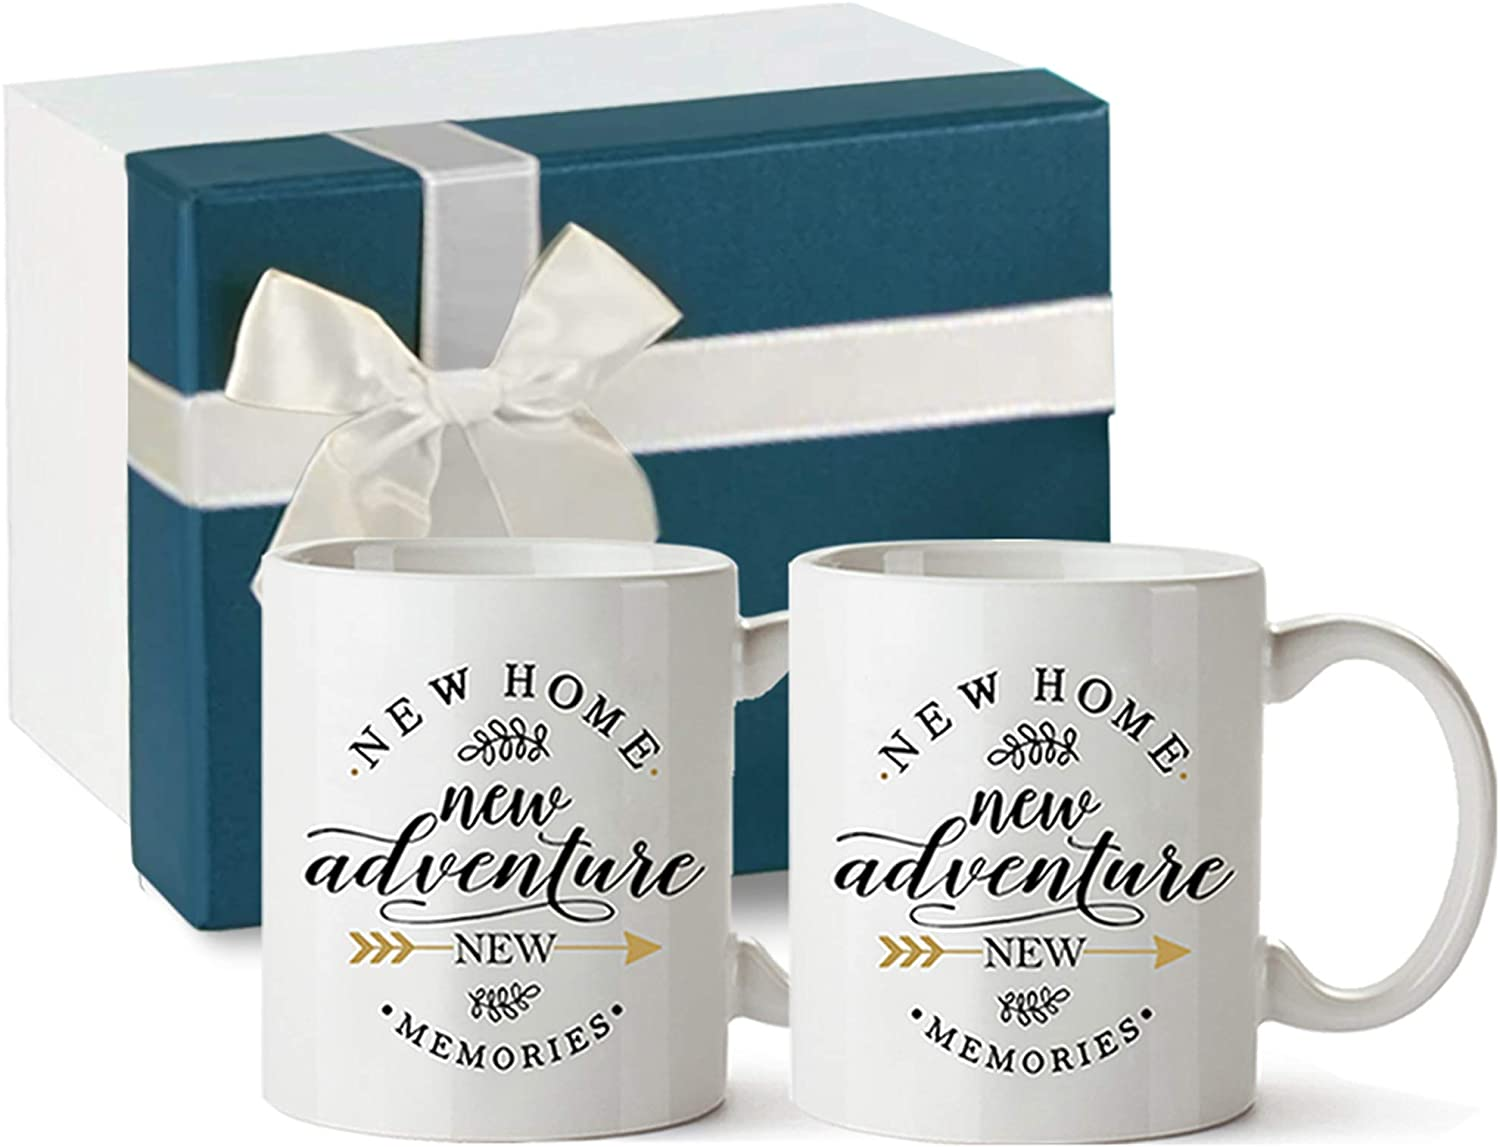 New Home New Adventure New  Memories housewarming gifts for new home owners mugs.